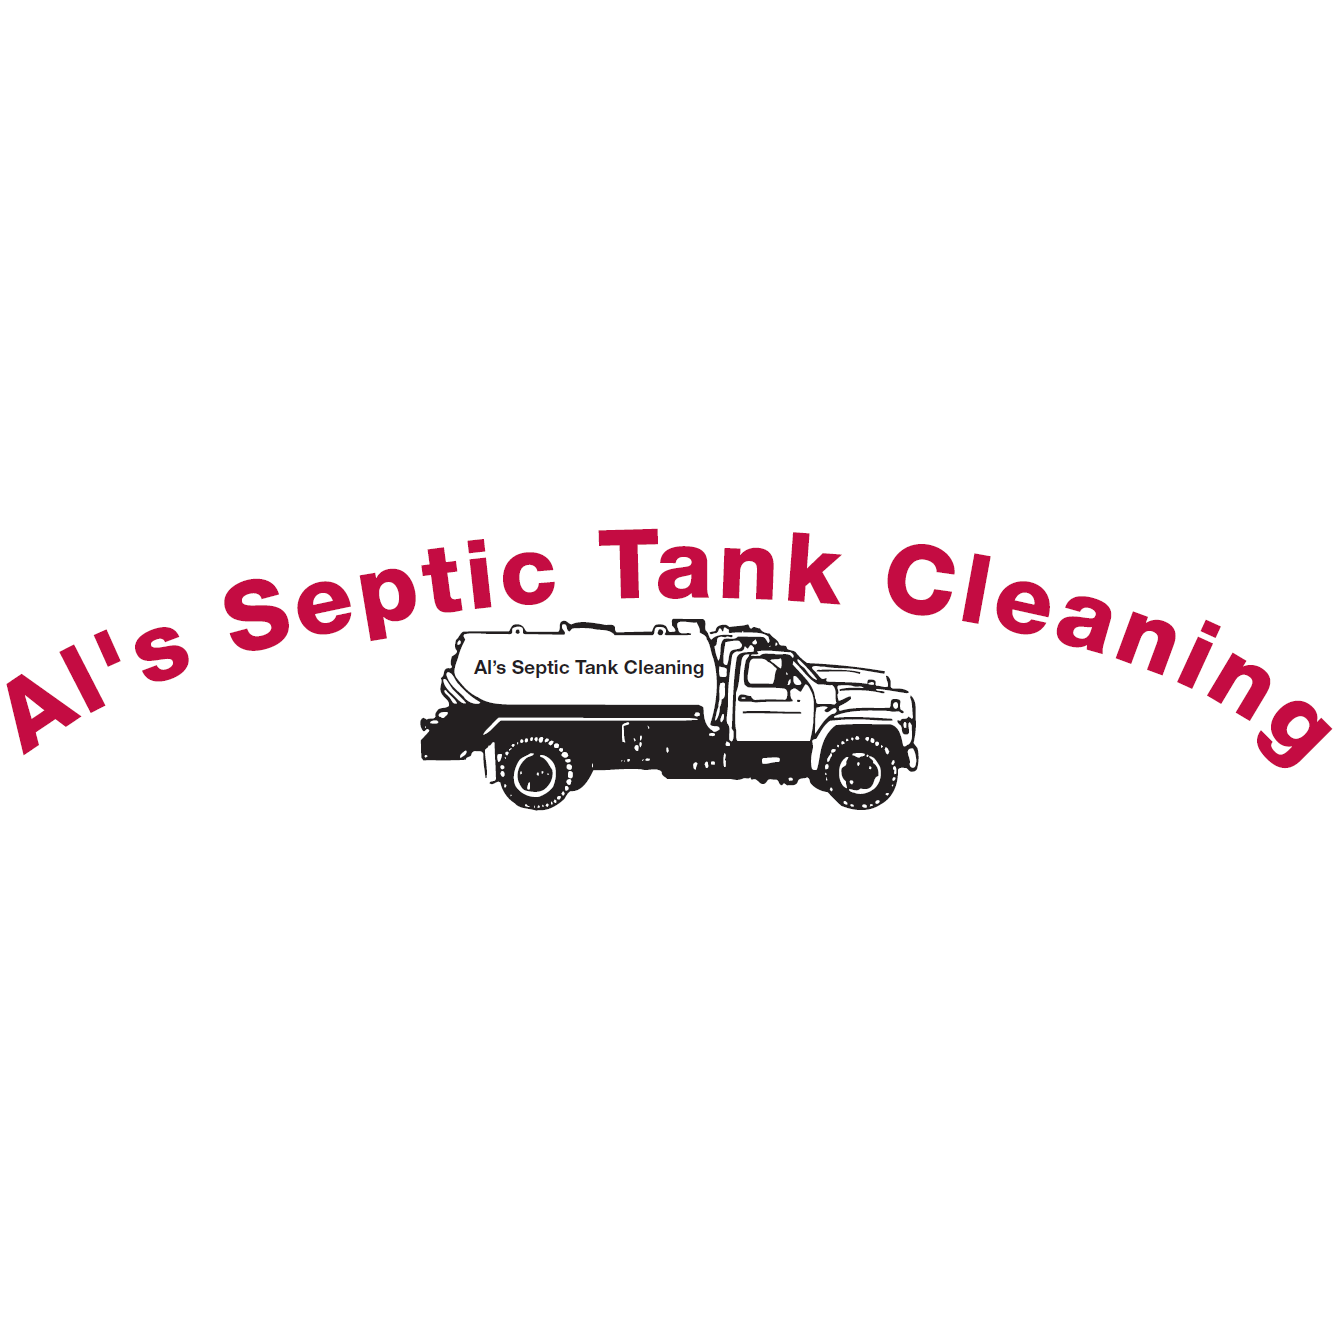 Al's Septic Tank Cleaning